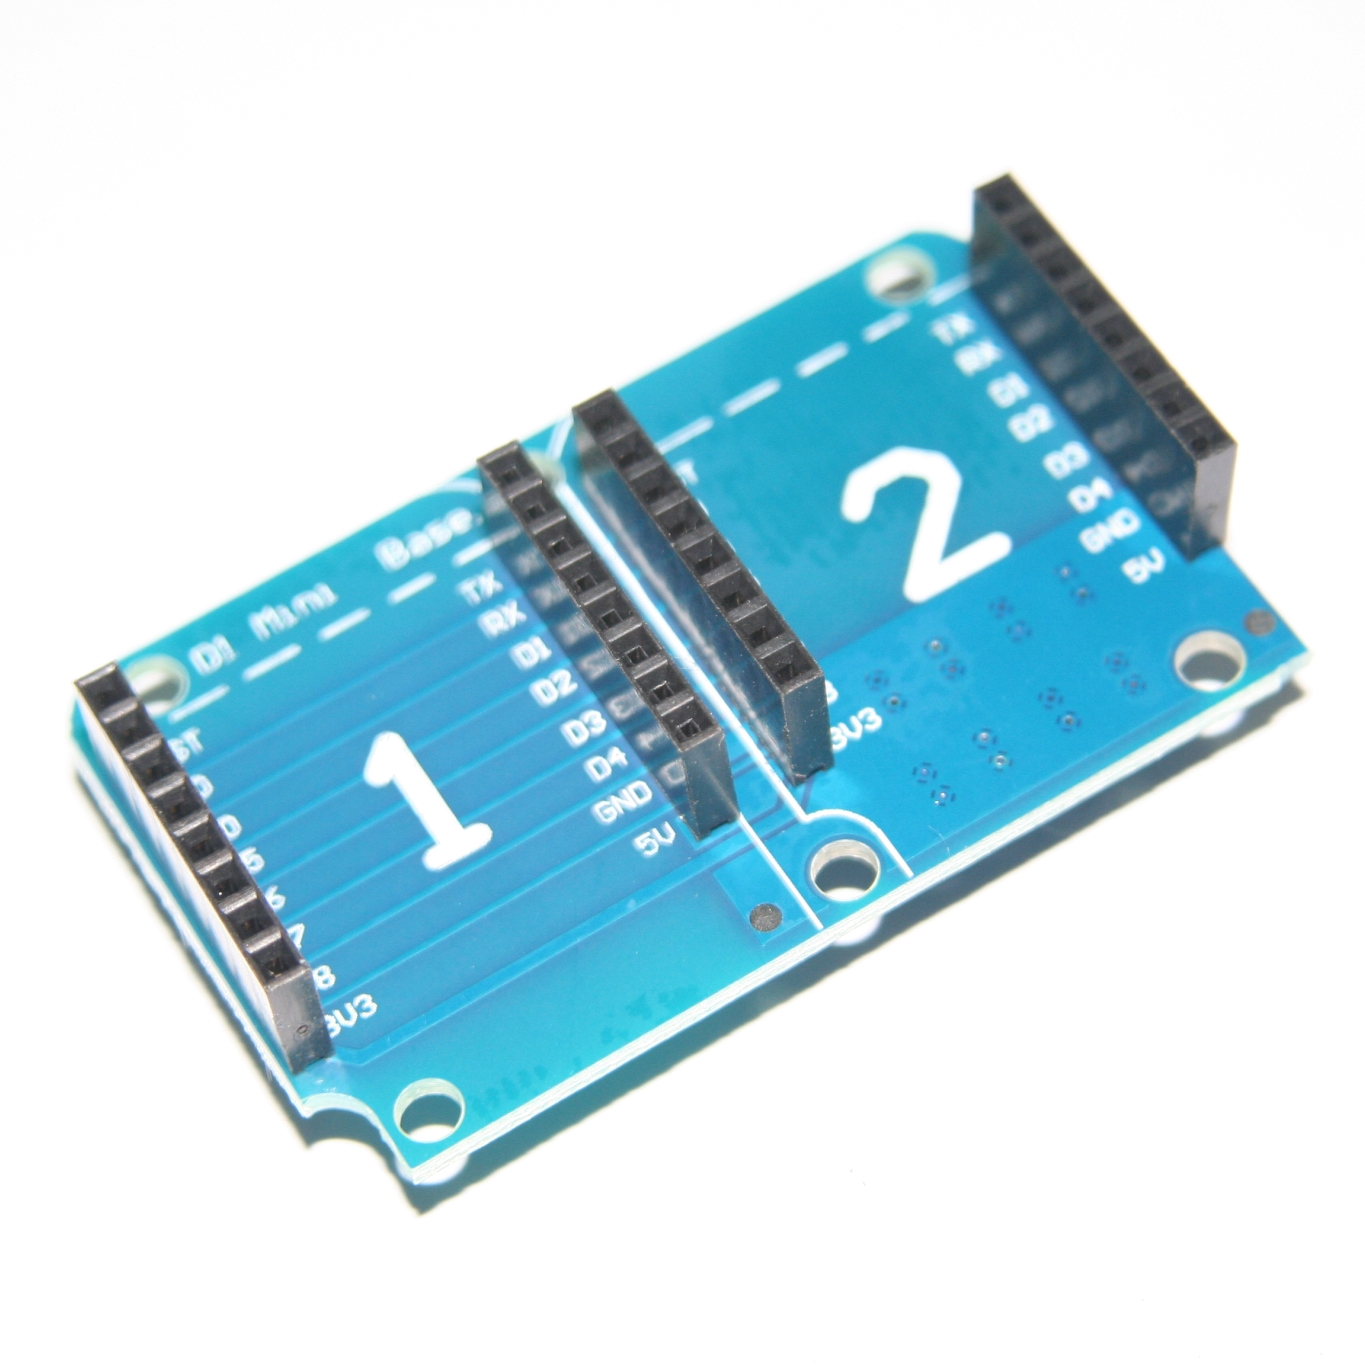 Youe Shone For Wemos D1 Mini Ws2812b Rgb Full Color Shield Board Integrated Circuits